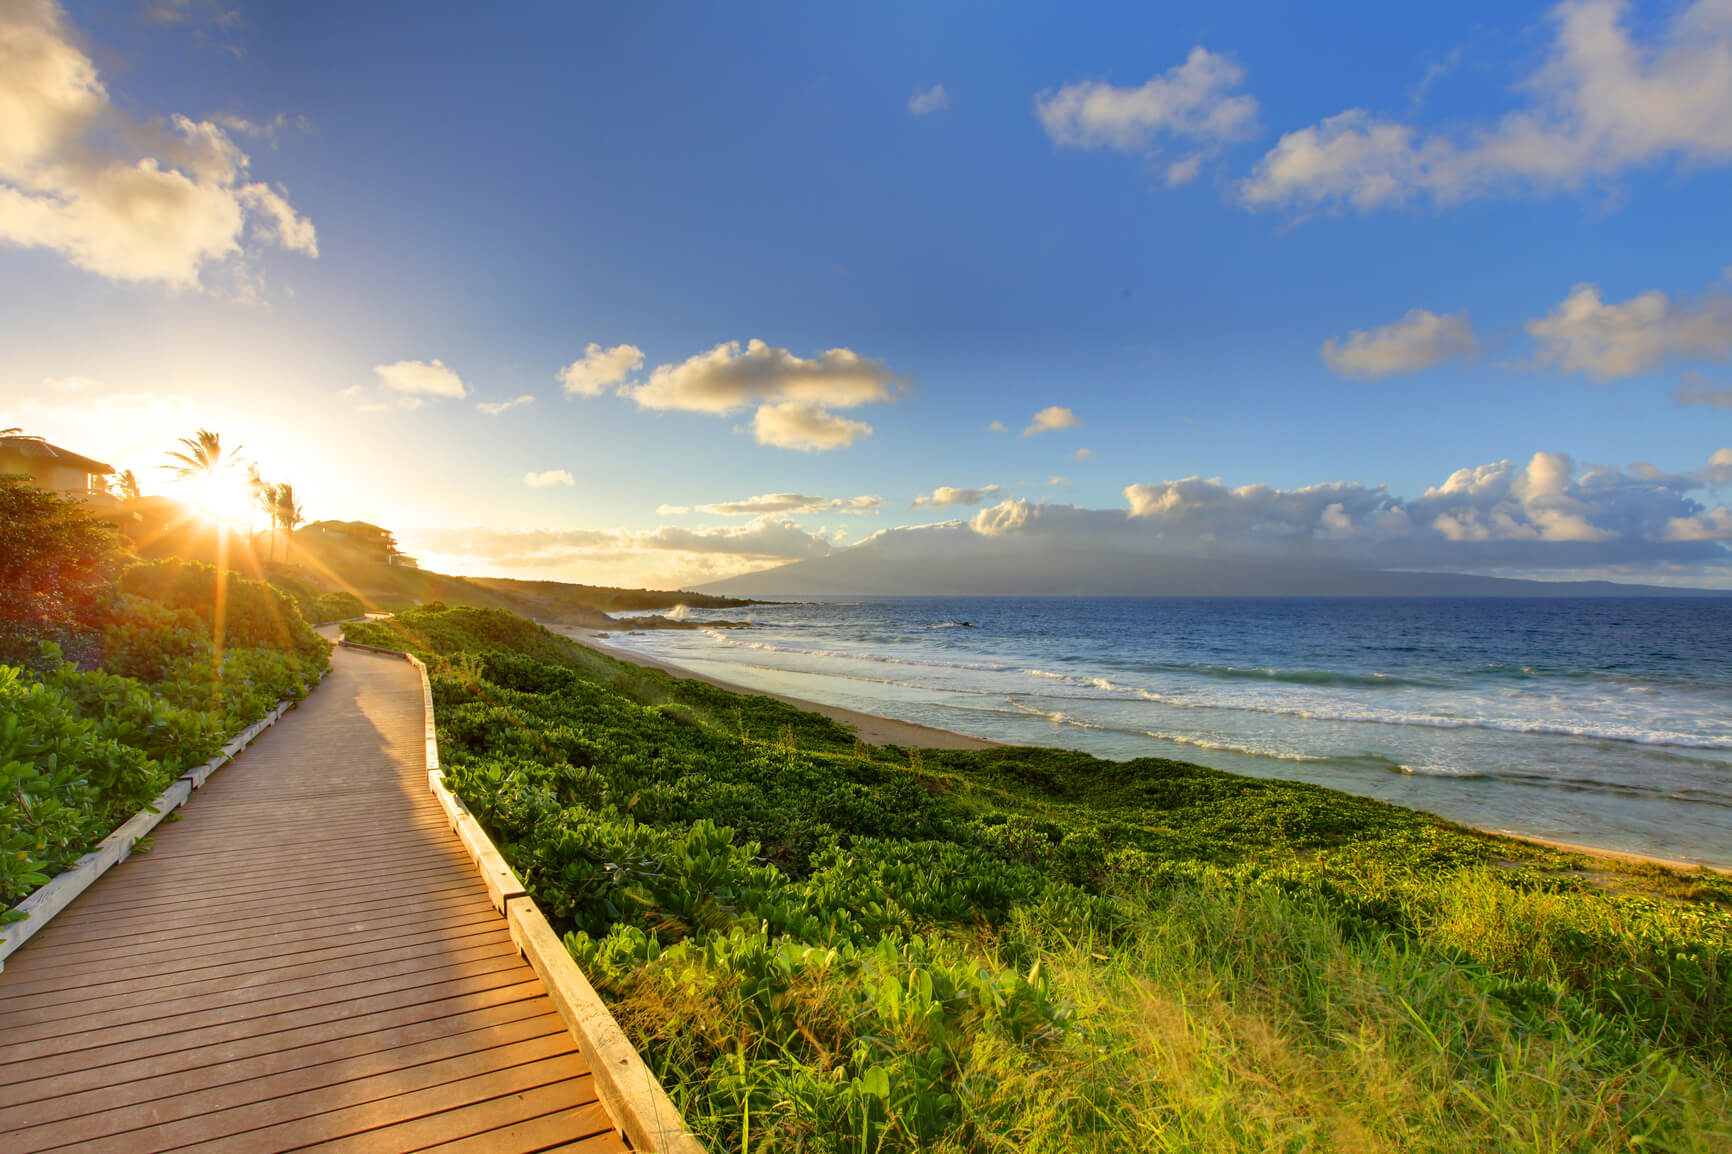 SUMMER: Seattle to Hawaii (& vice versa) for only $342 roundtrip